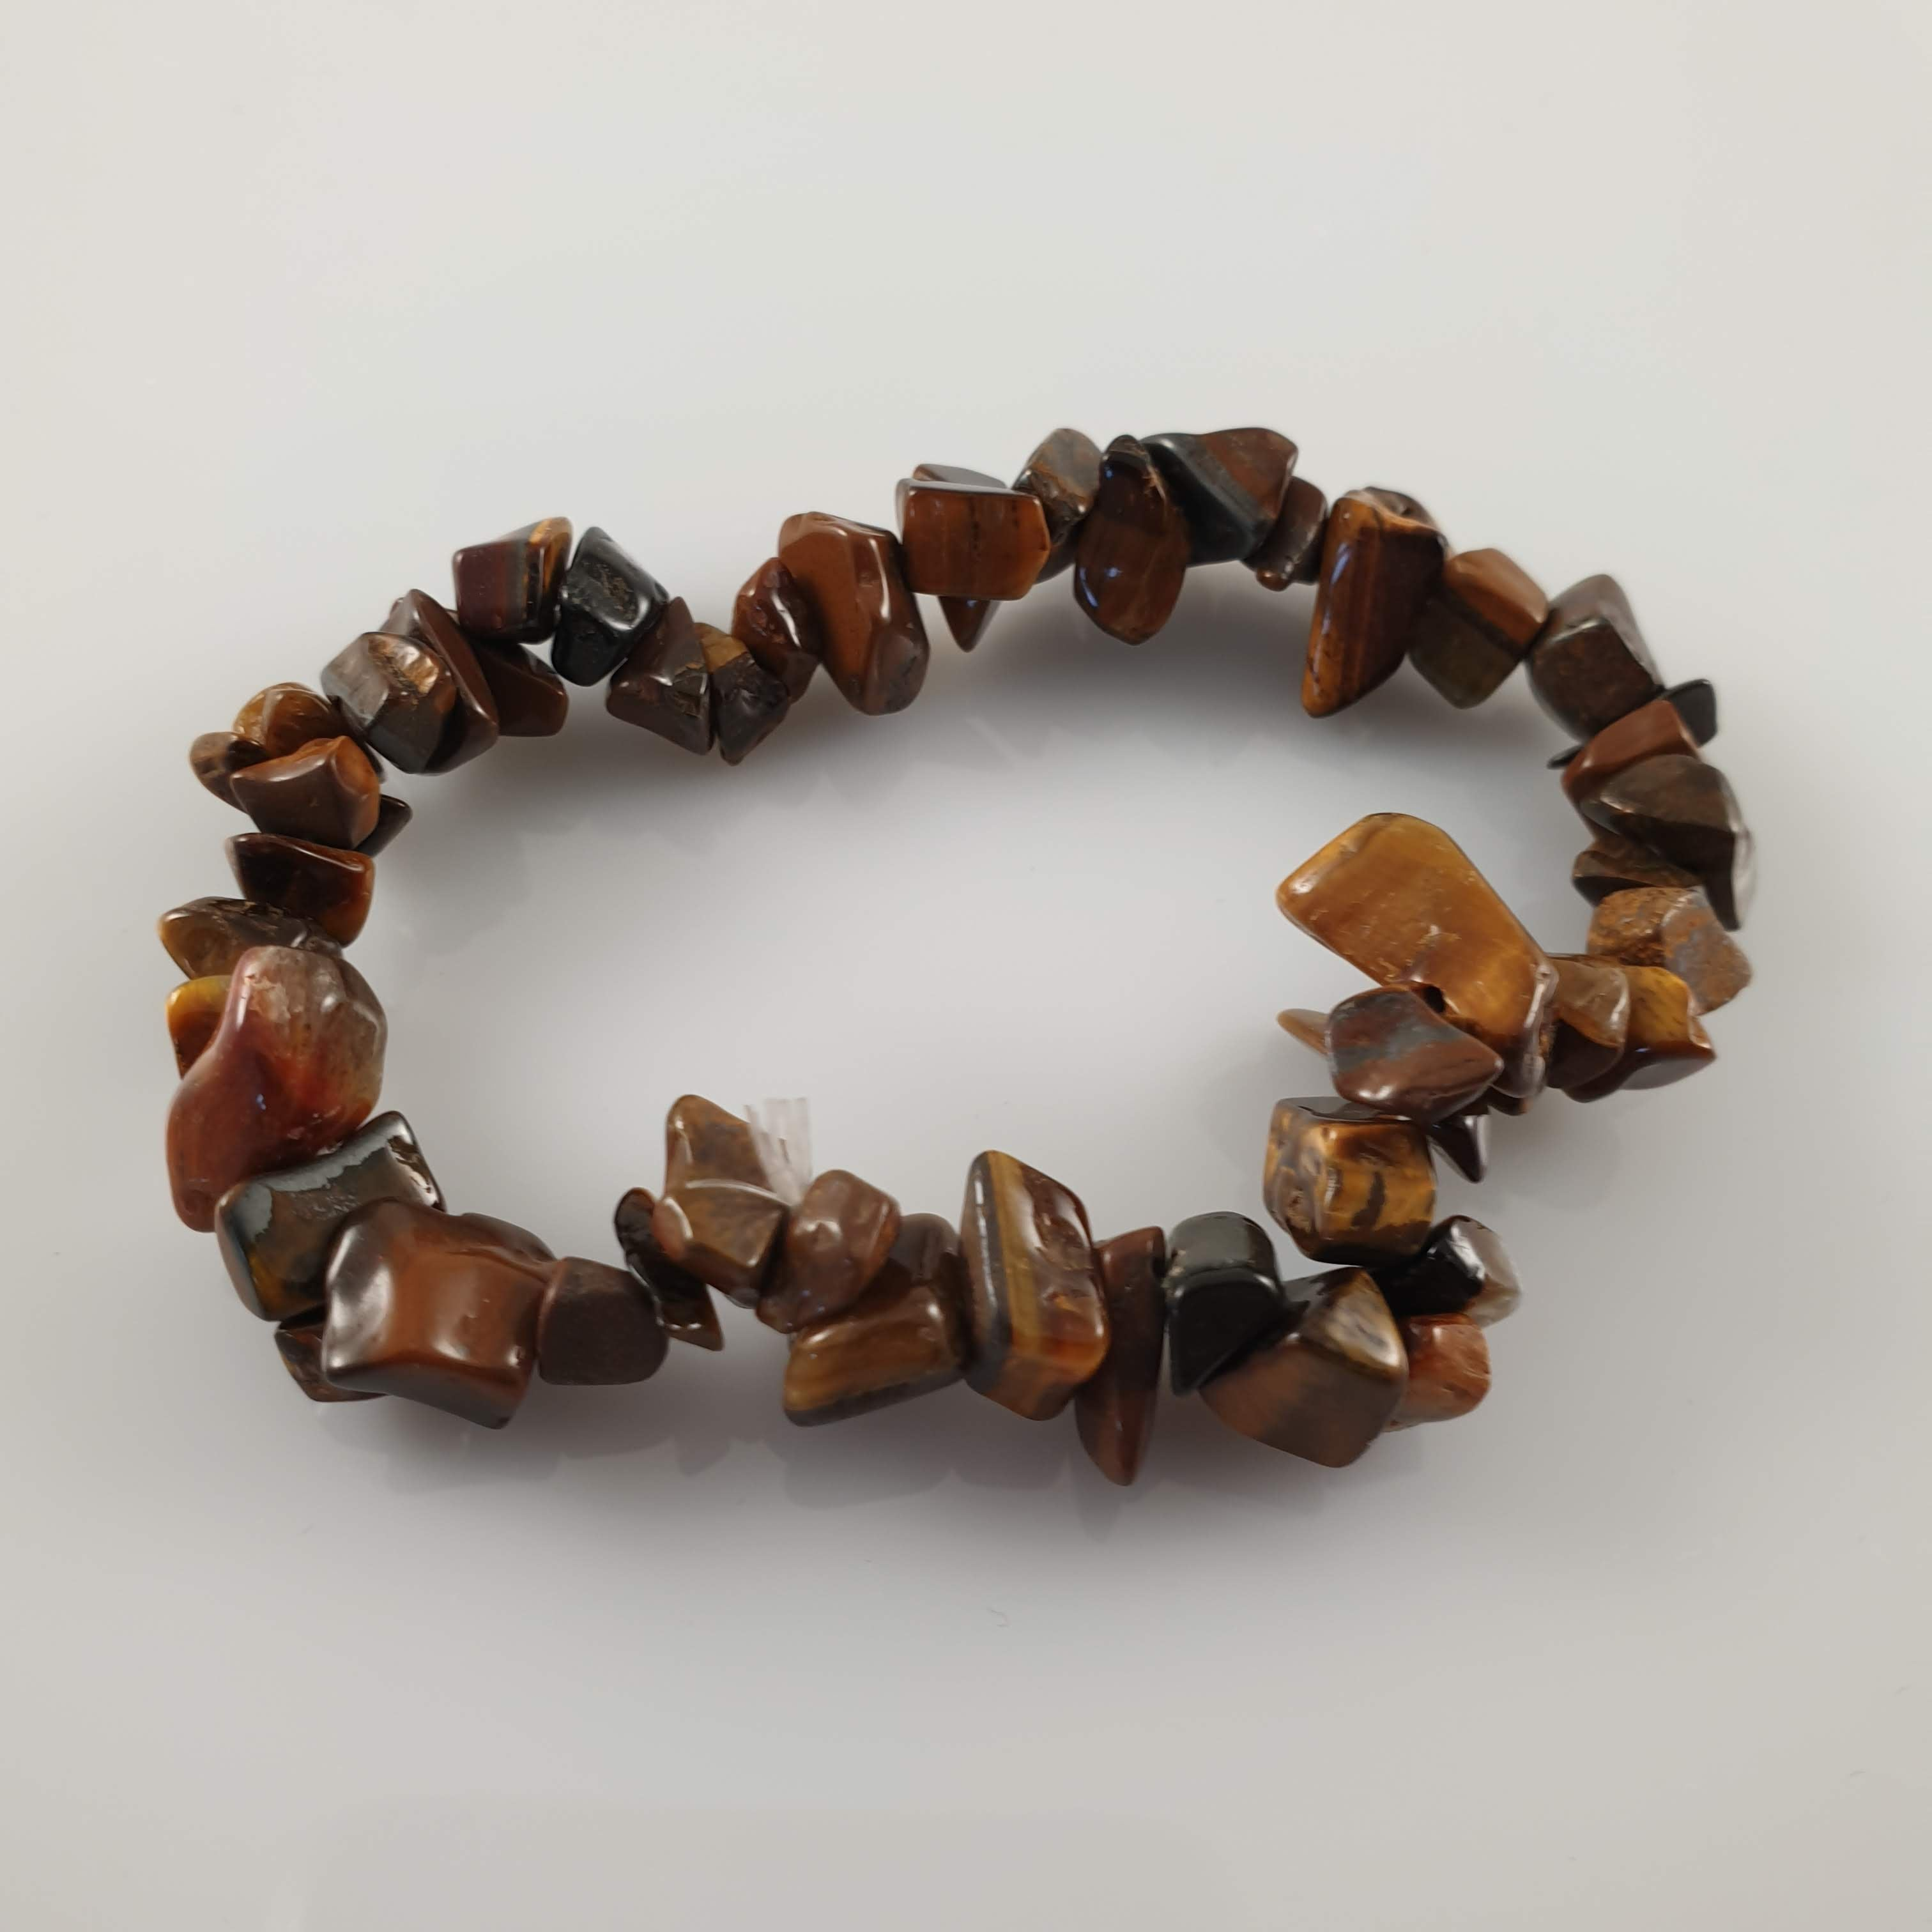 Tiger's Eye Crystal Bracelet - Rivendell Shop NZ